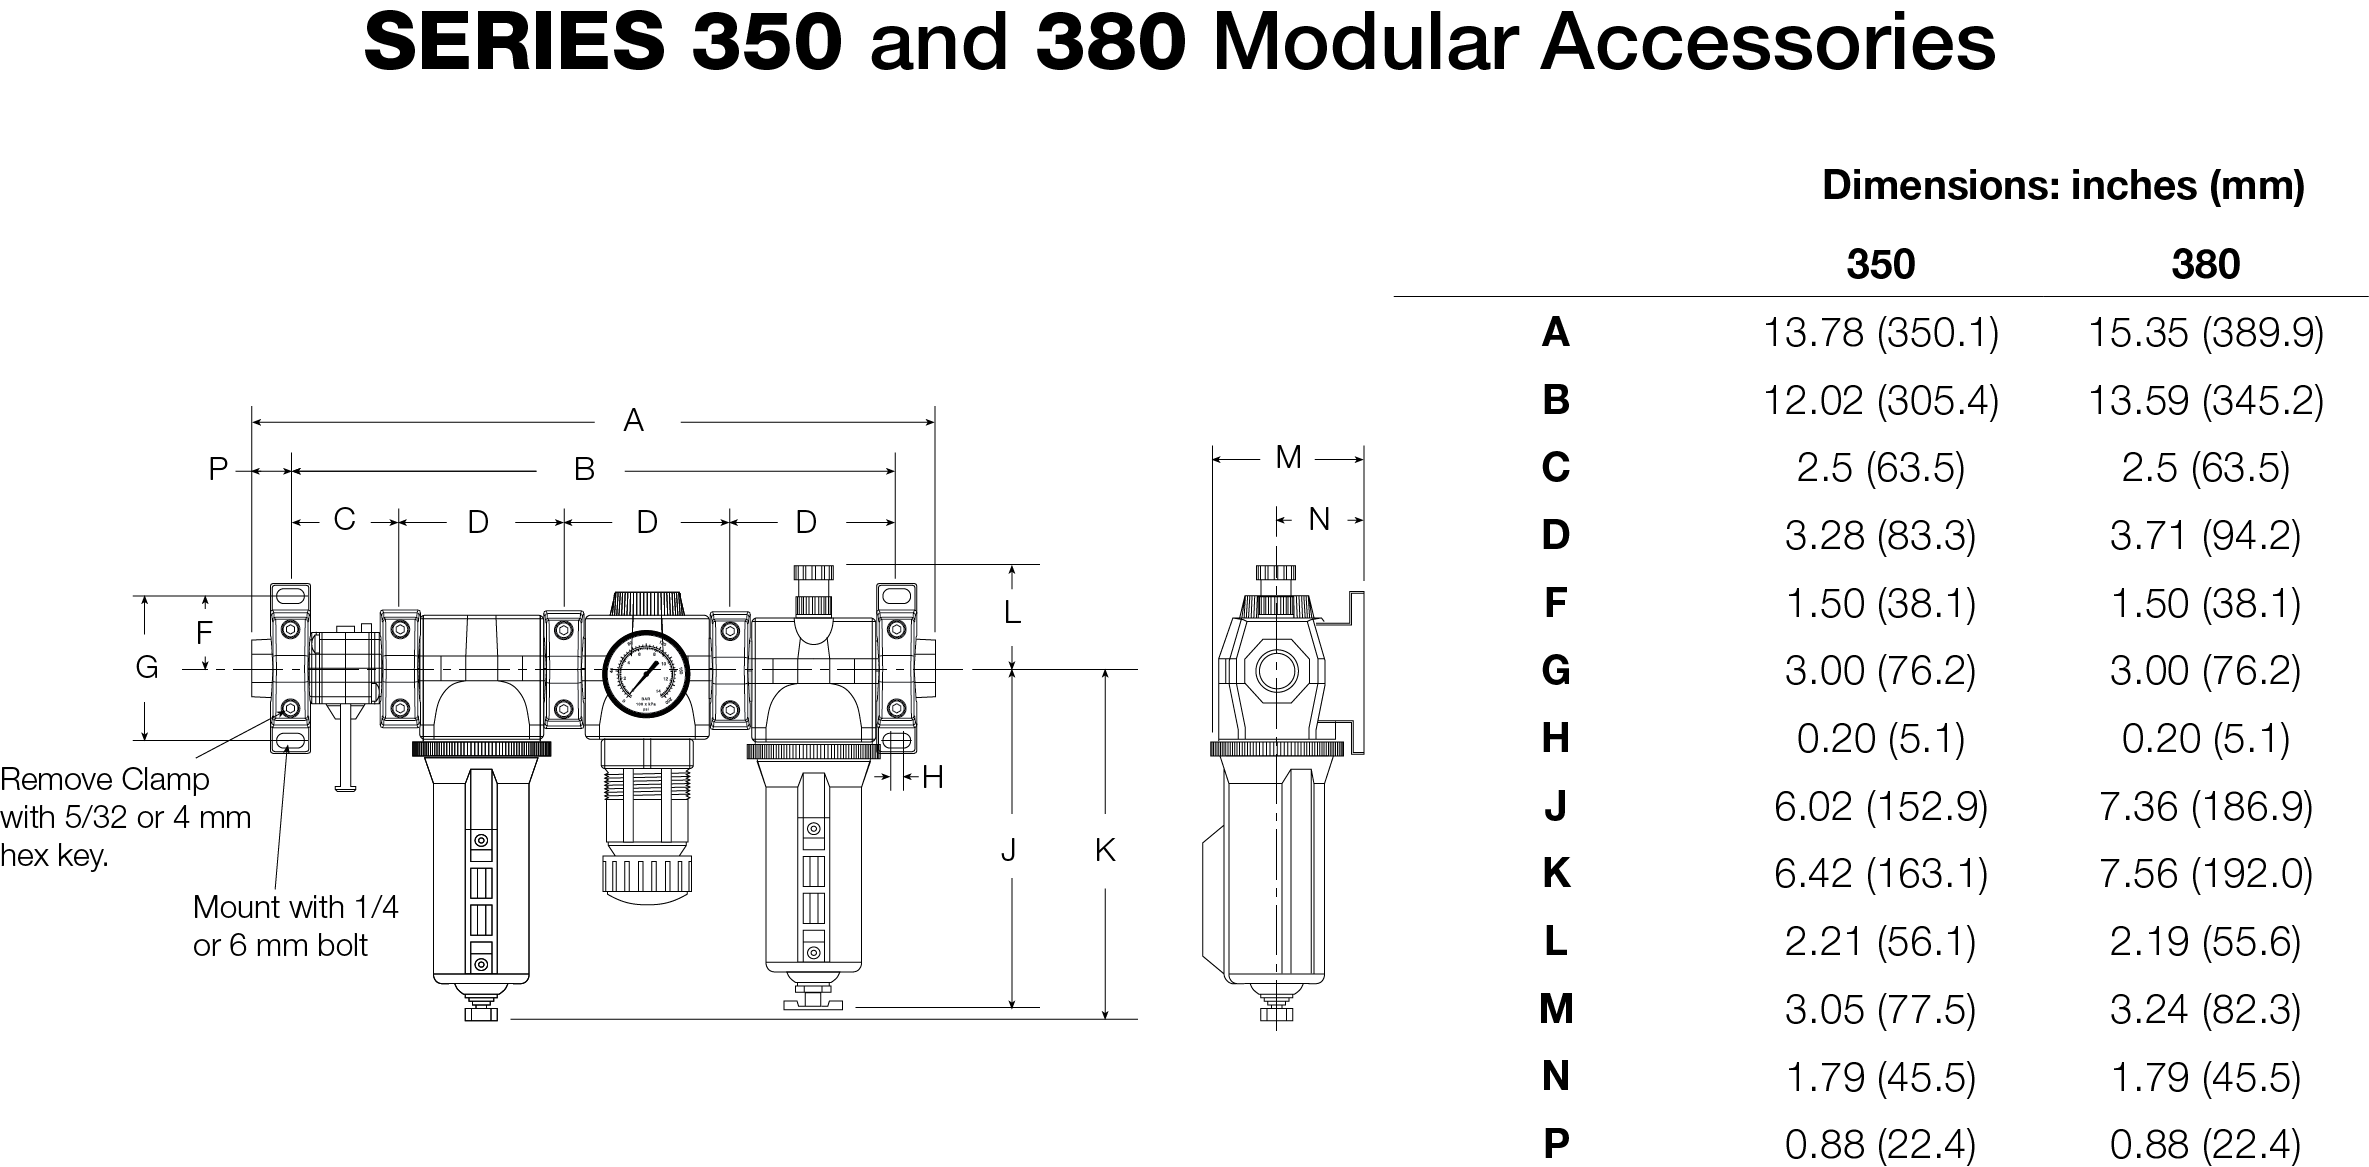 350 AND 380 SERIES FRL MODULAR ACCESSORIES DIMENSIONS